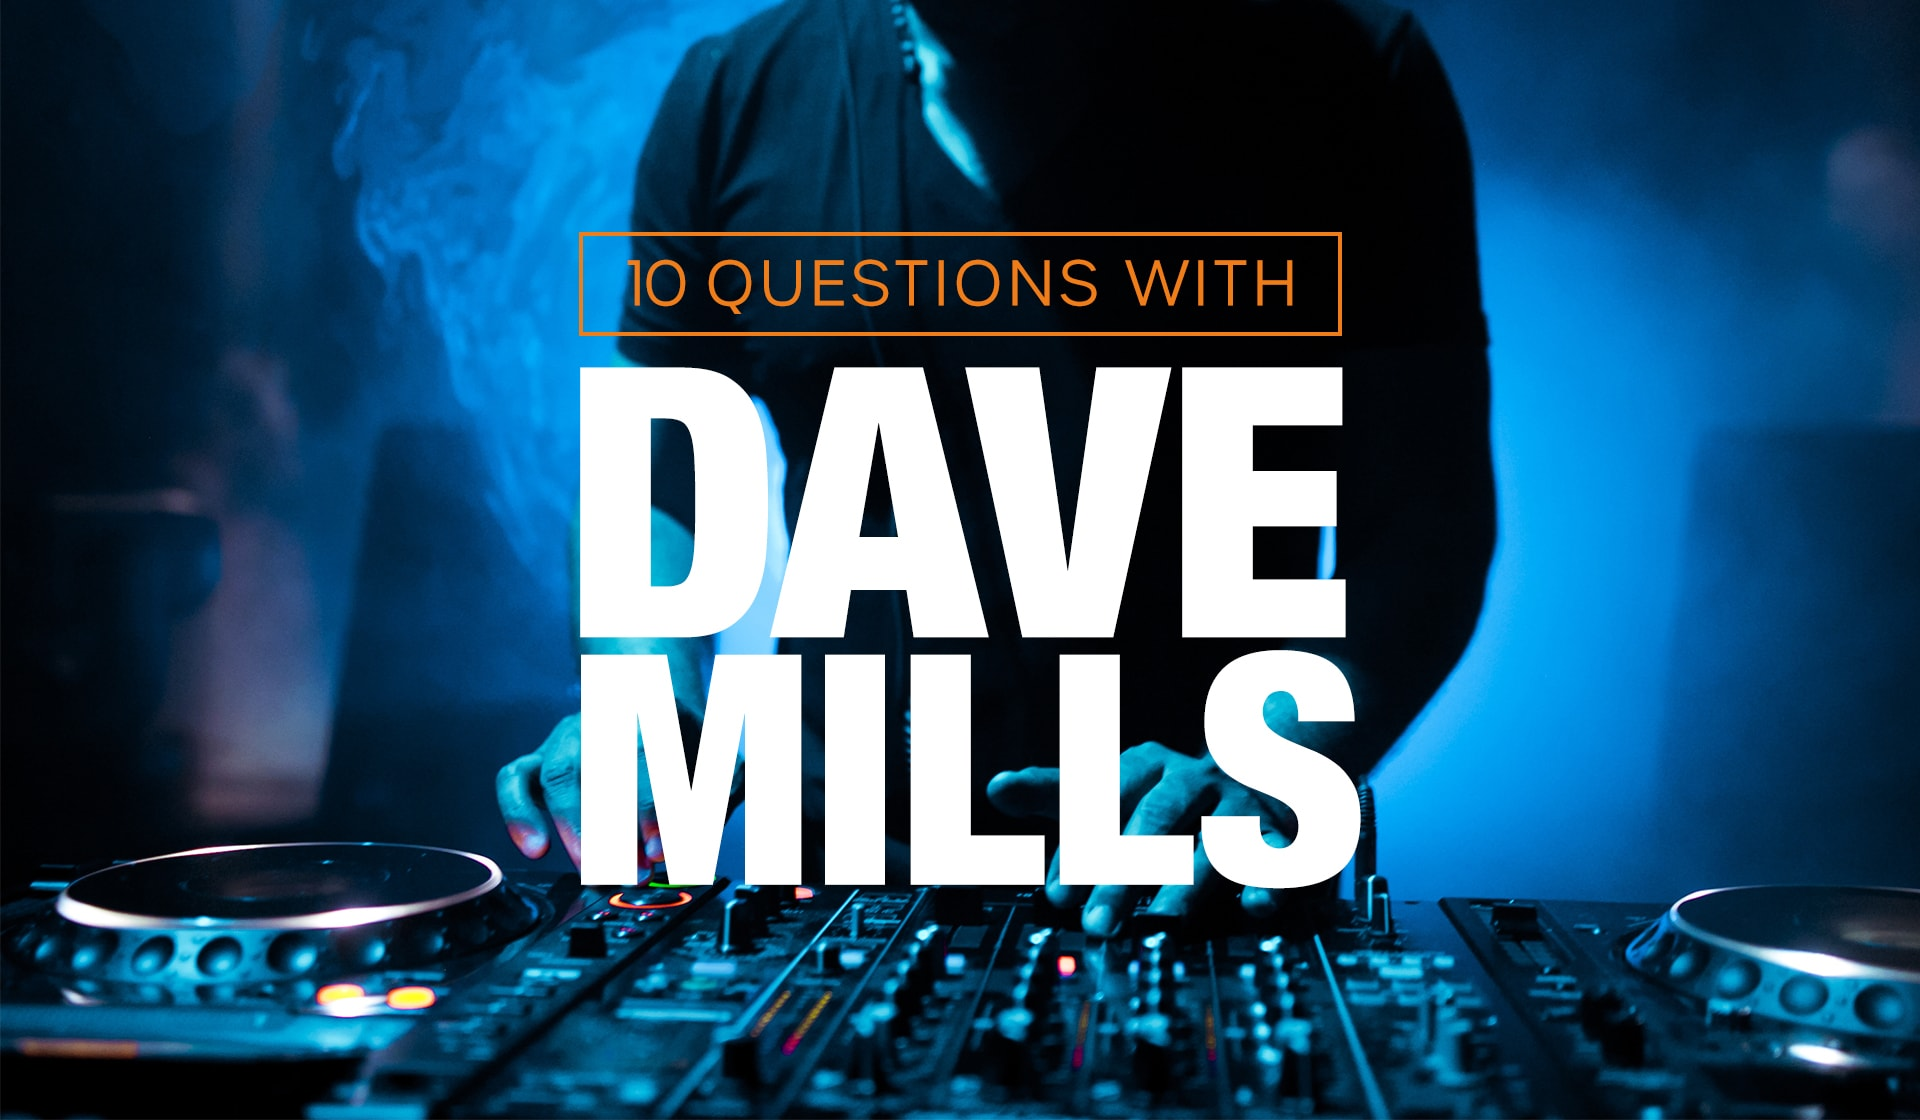 10 Questions with Dave Mills